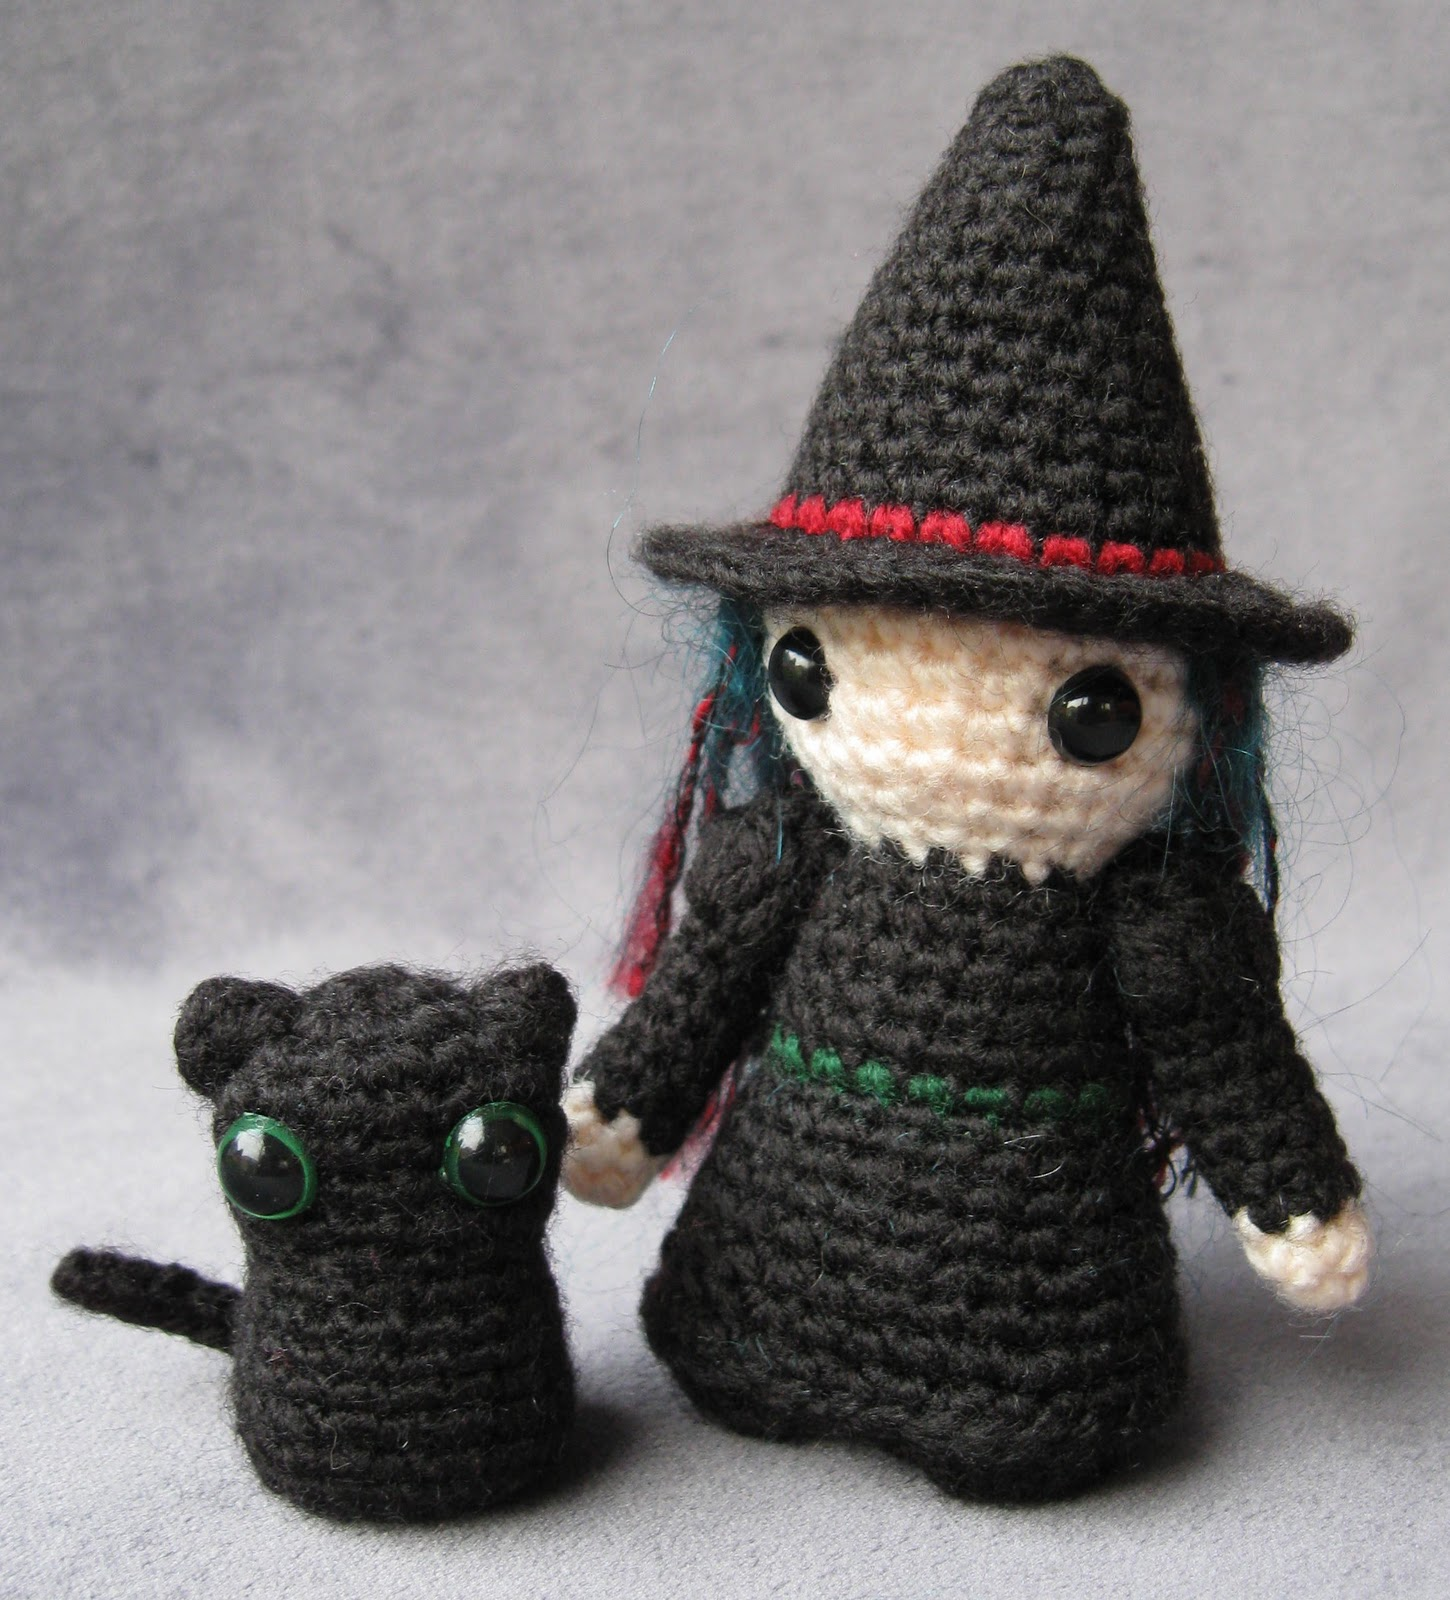 Free Crochet Hat Patterns For Halloween : LucyRavenscar - Crochet Creatures: Halloween Patterns